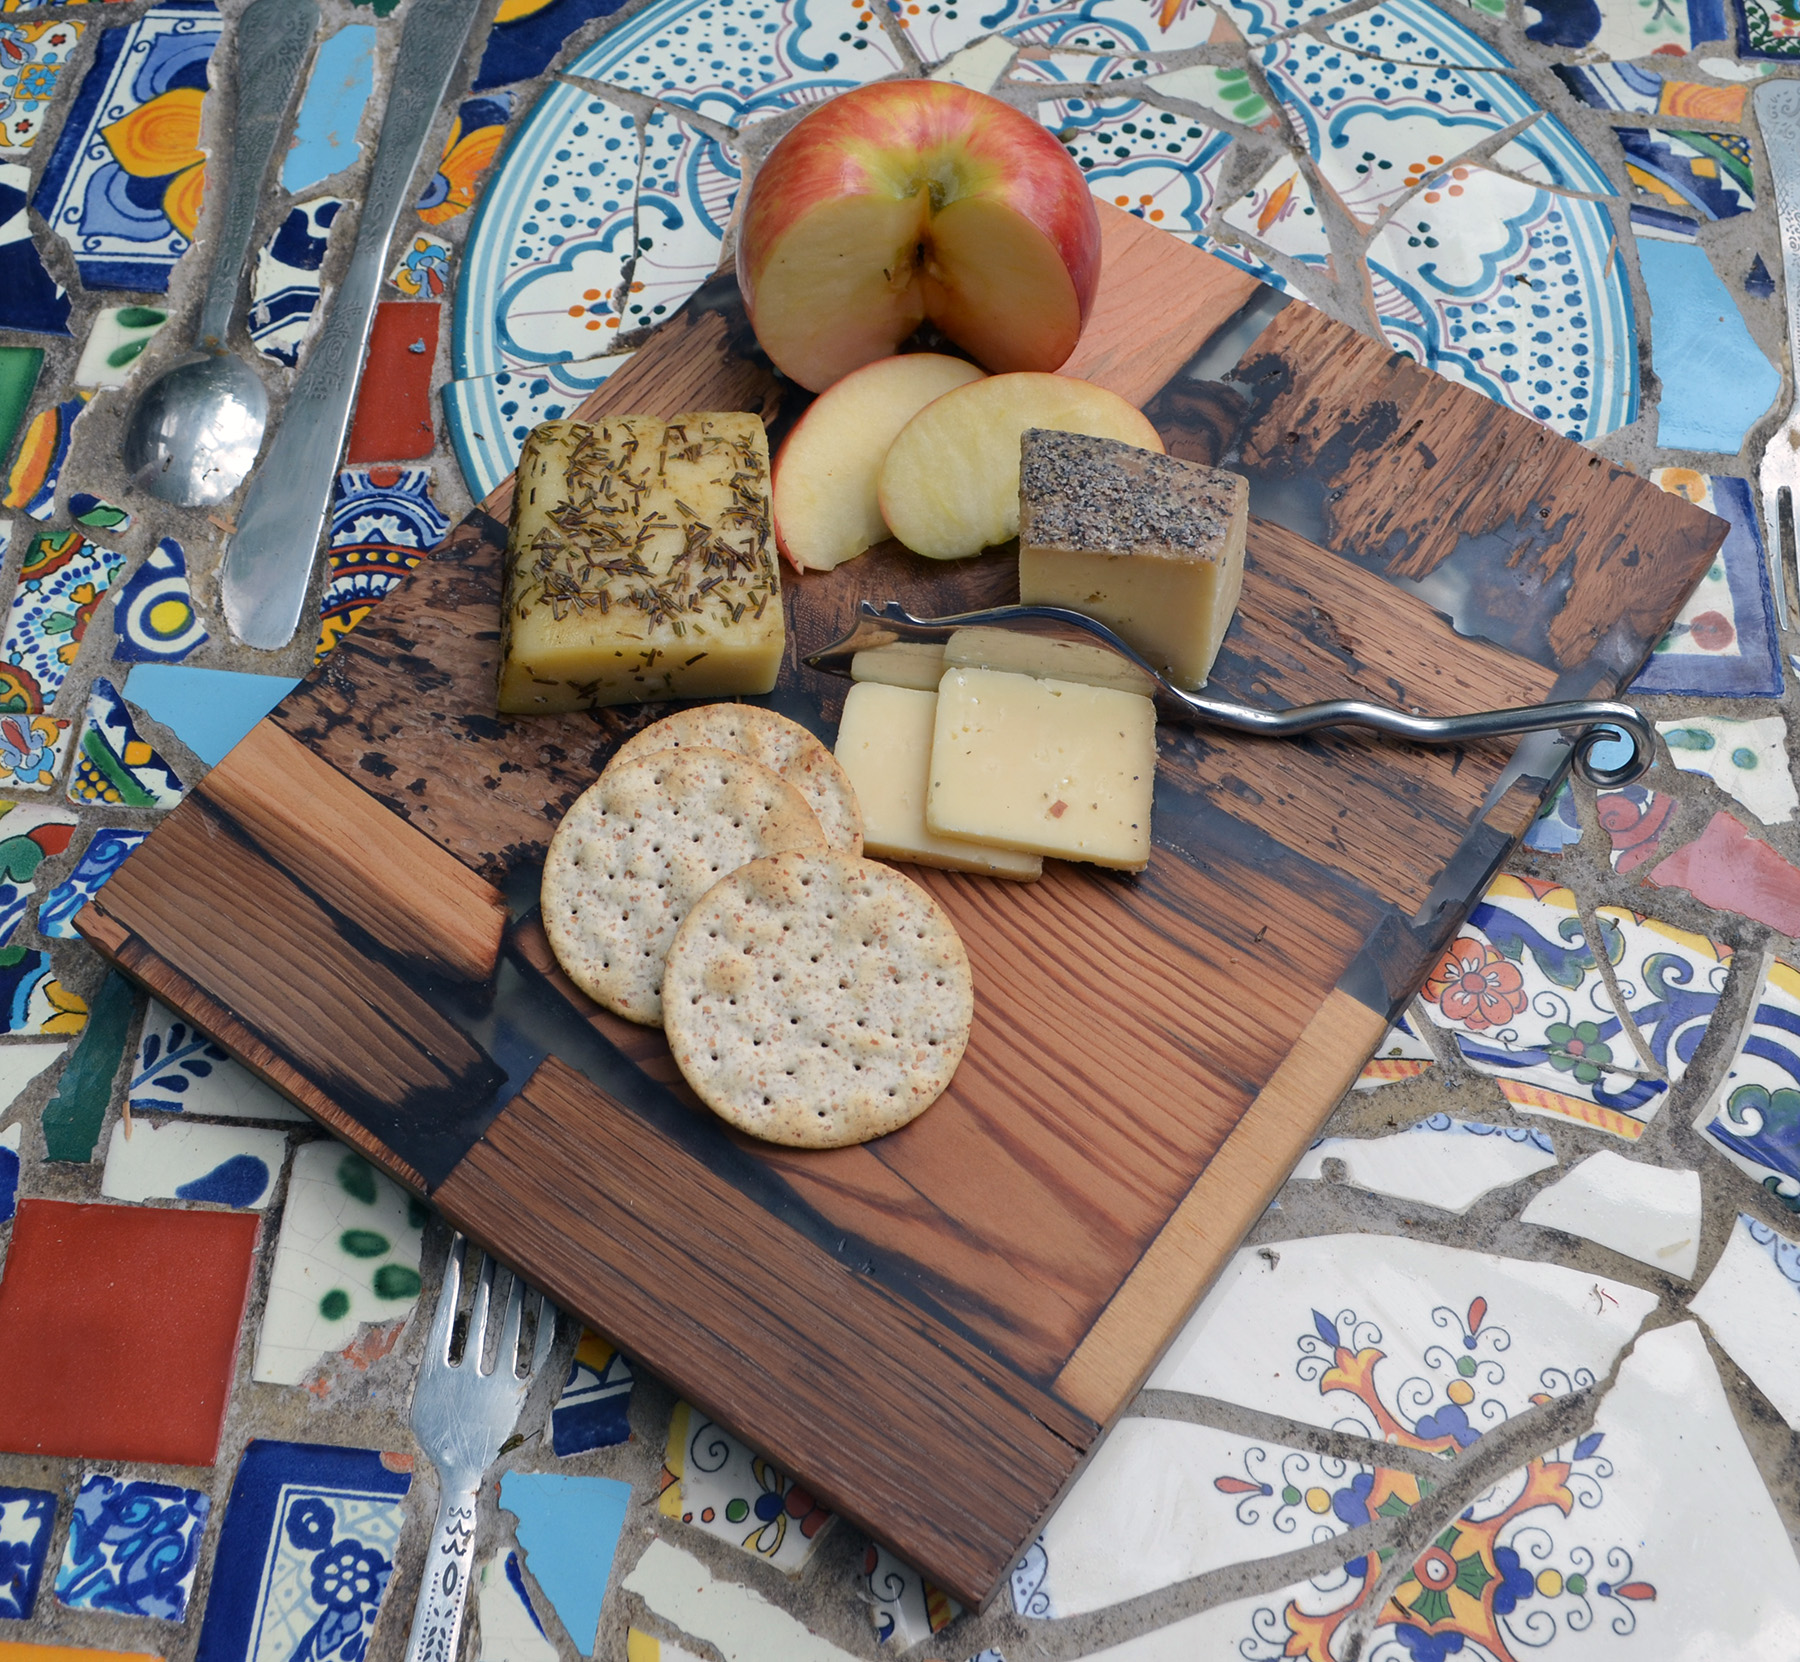 Rustic Wood Mosaic Servingcutting Board Abodeacious